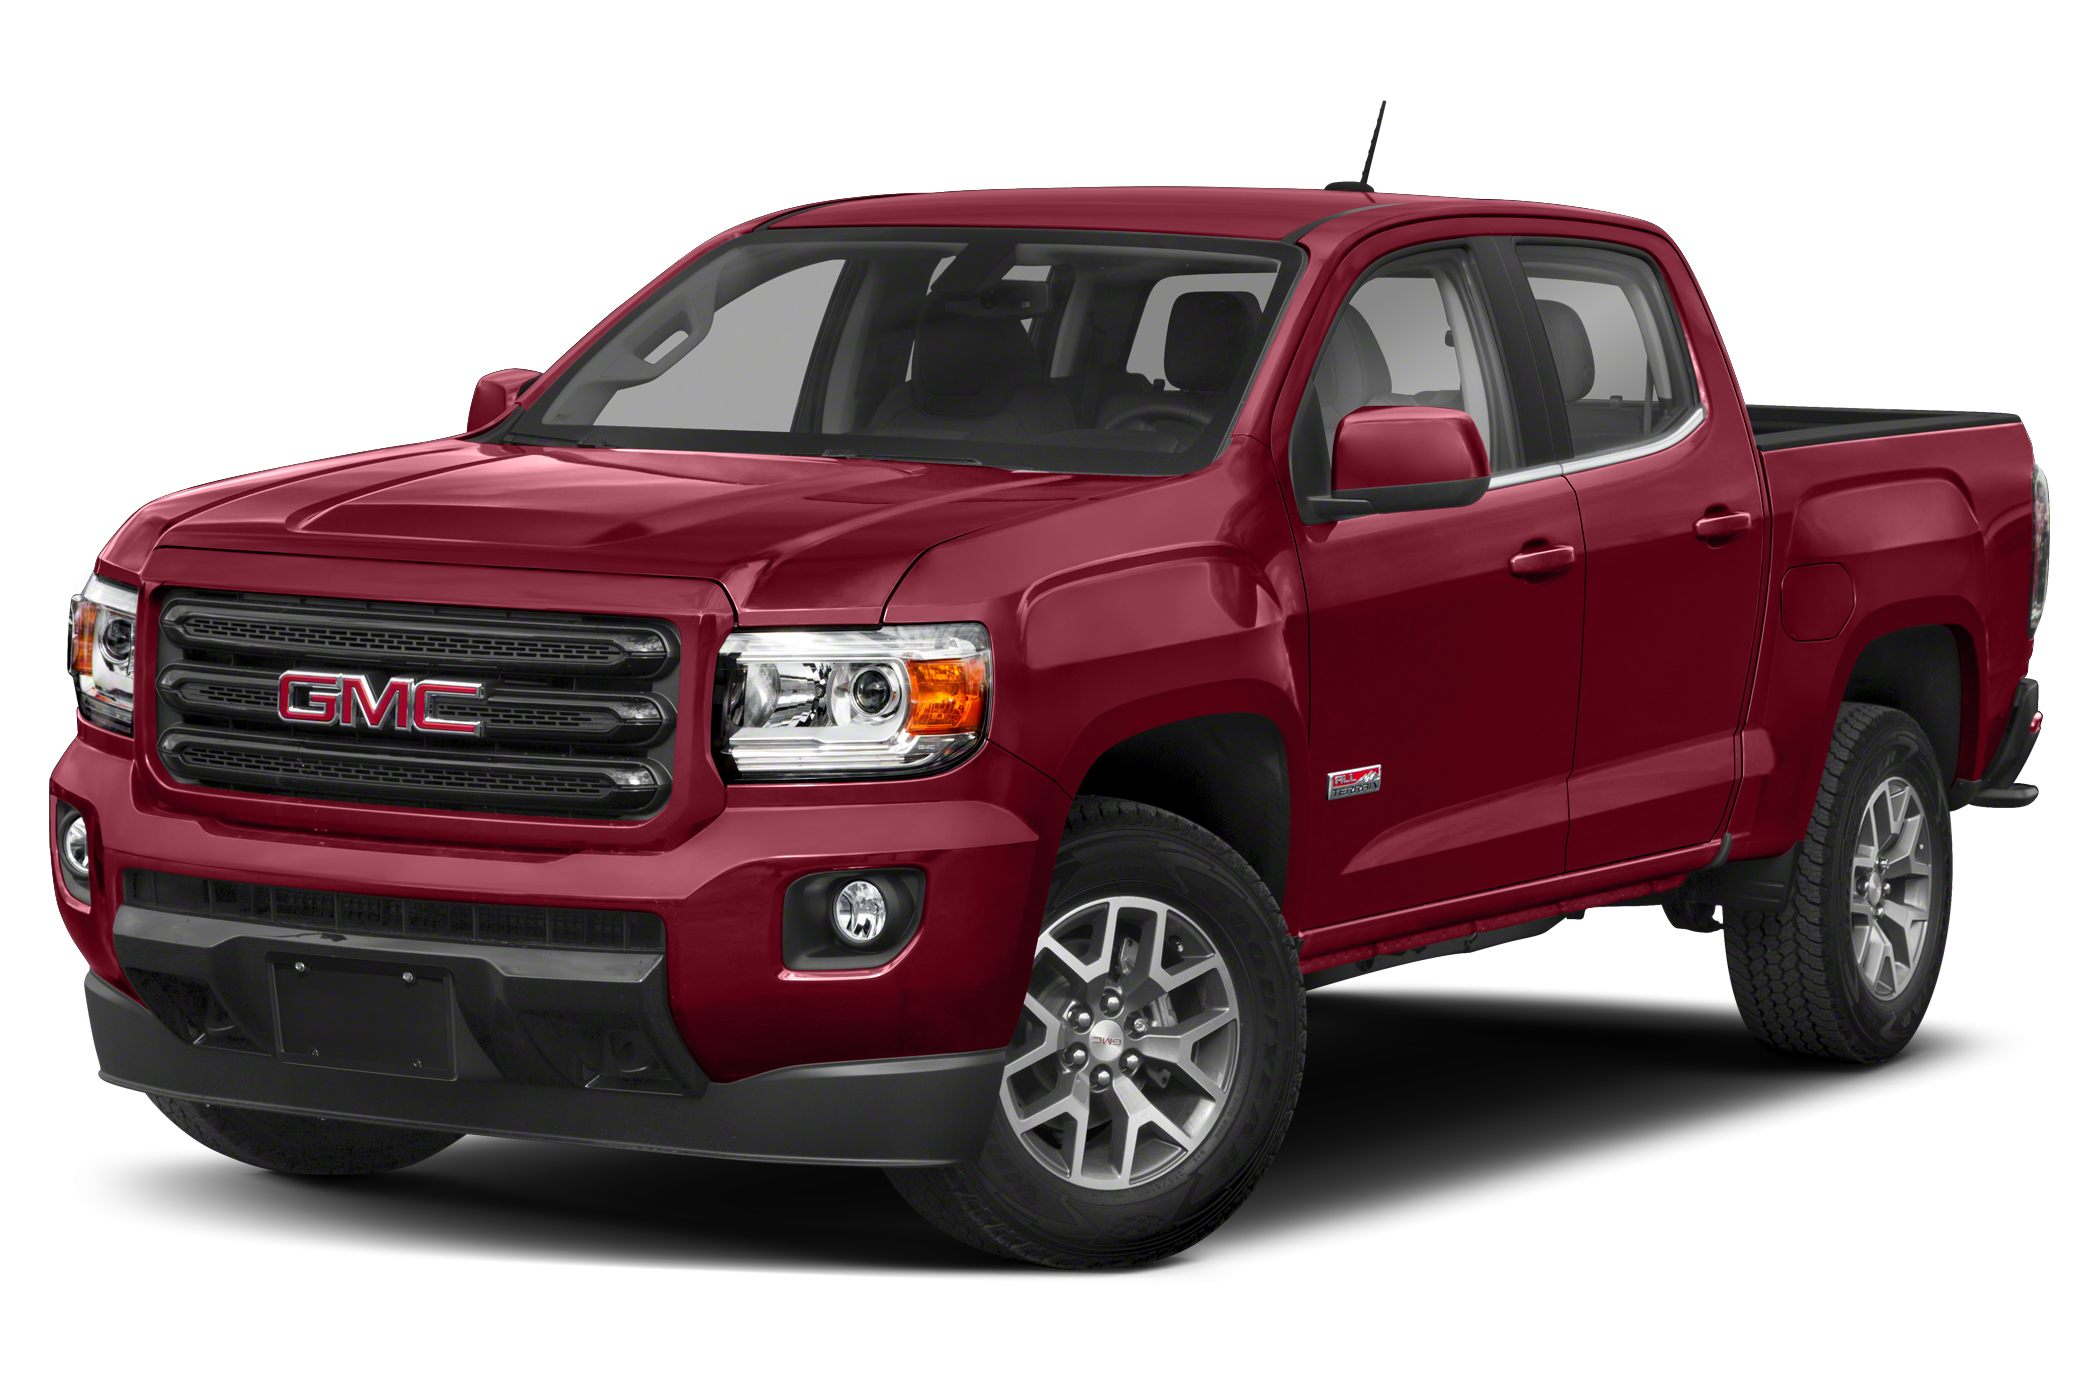 2019 Gmc Canyon All Terrain W Leather 4x4 Crew Cab 5 Ft Box 128 3 In Wb For Sale